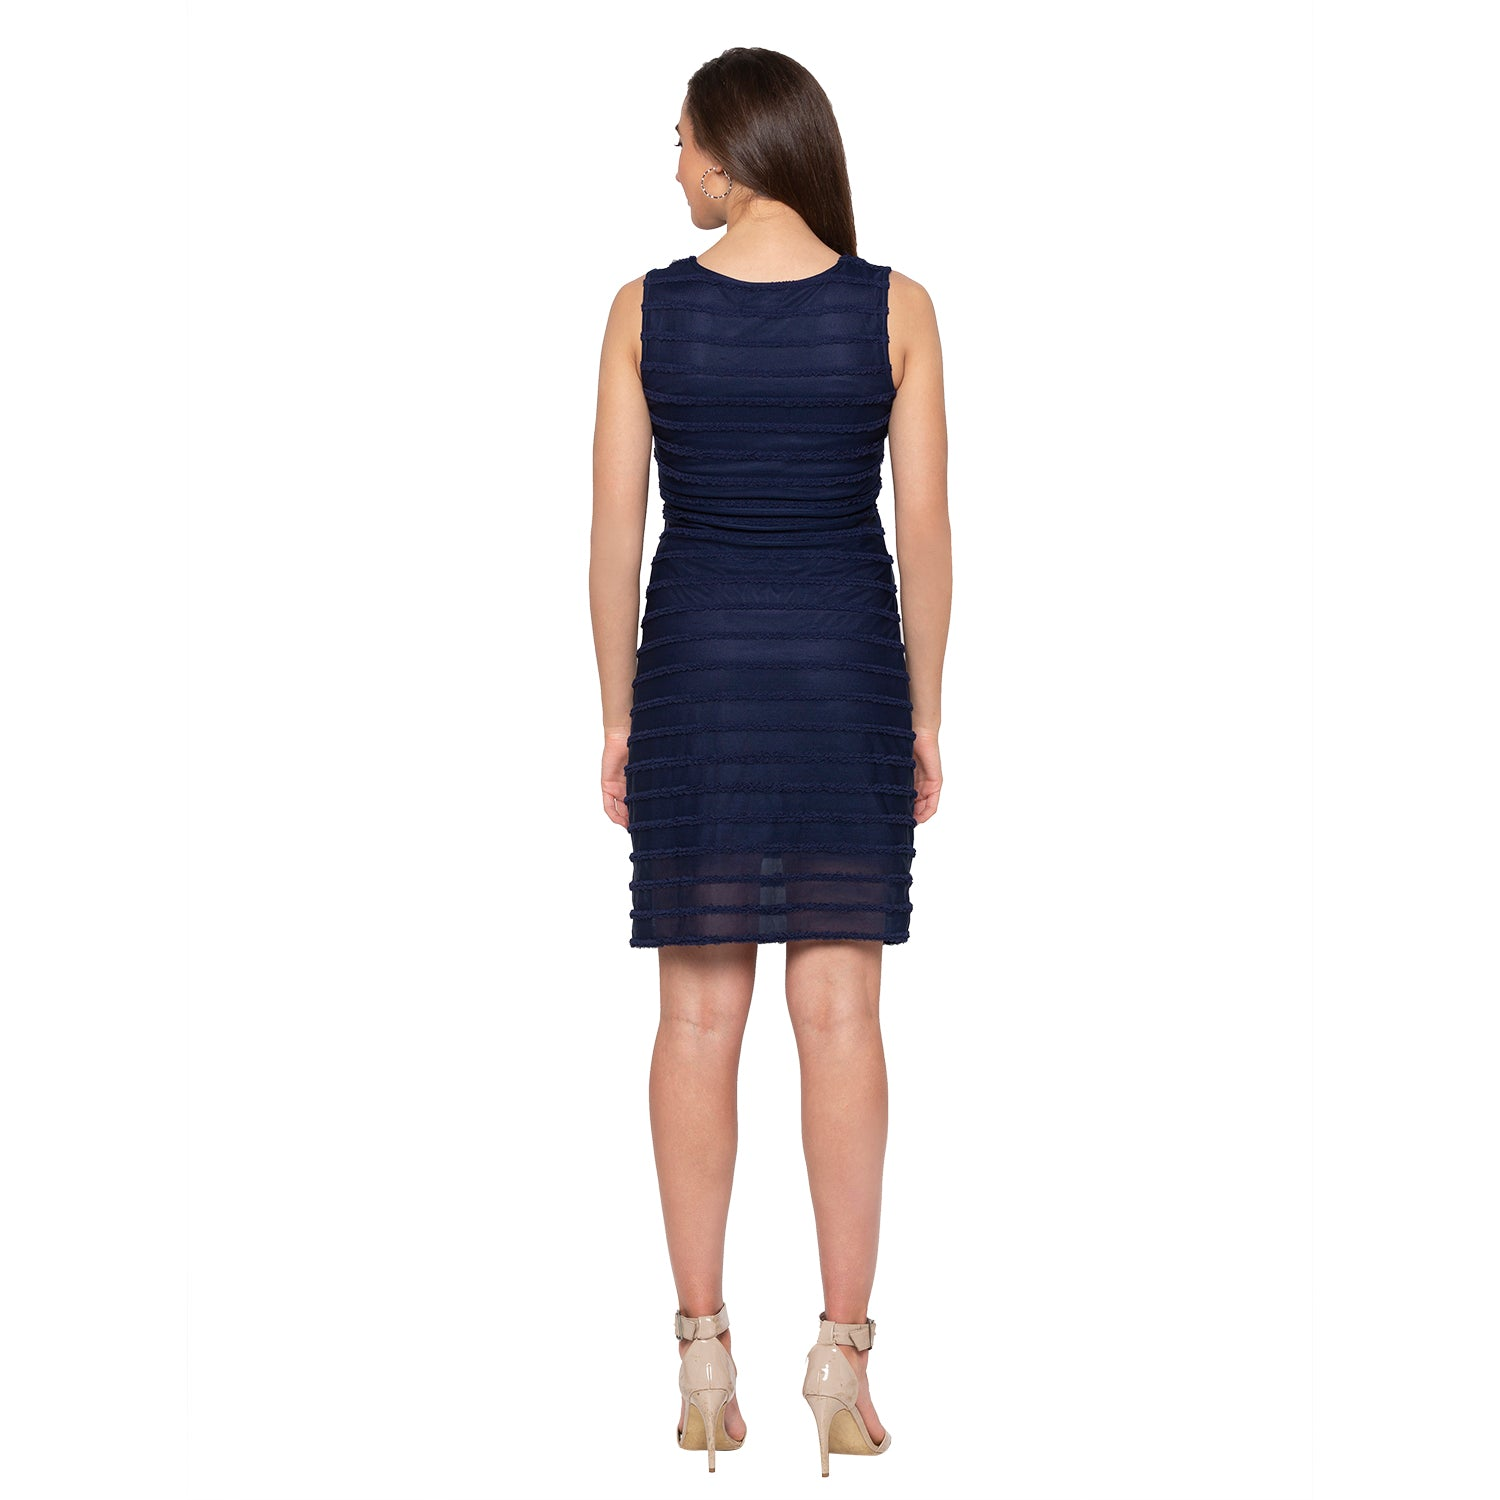 Navy Blue Self-Design Dress-3